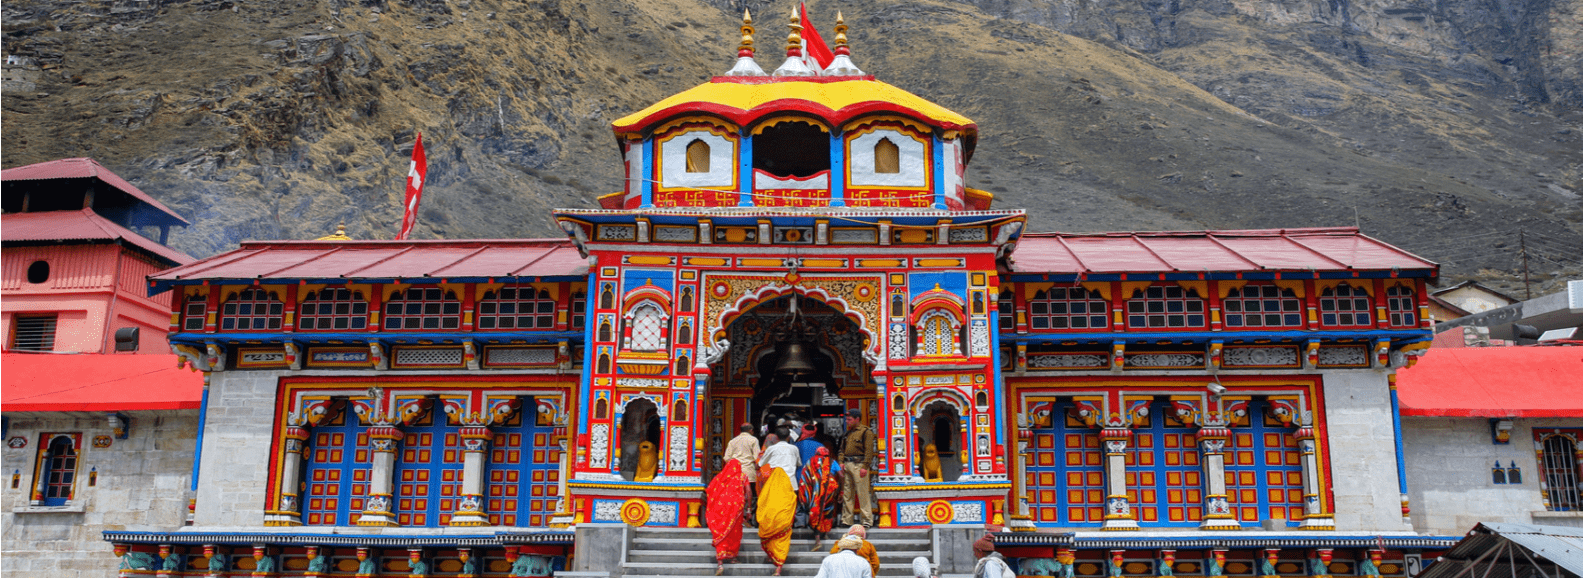 Badrinath temple in Uttarakhand is a part of Char Dham yatra and Do Dham yatra and is abode of Lord Vishnu